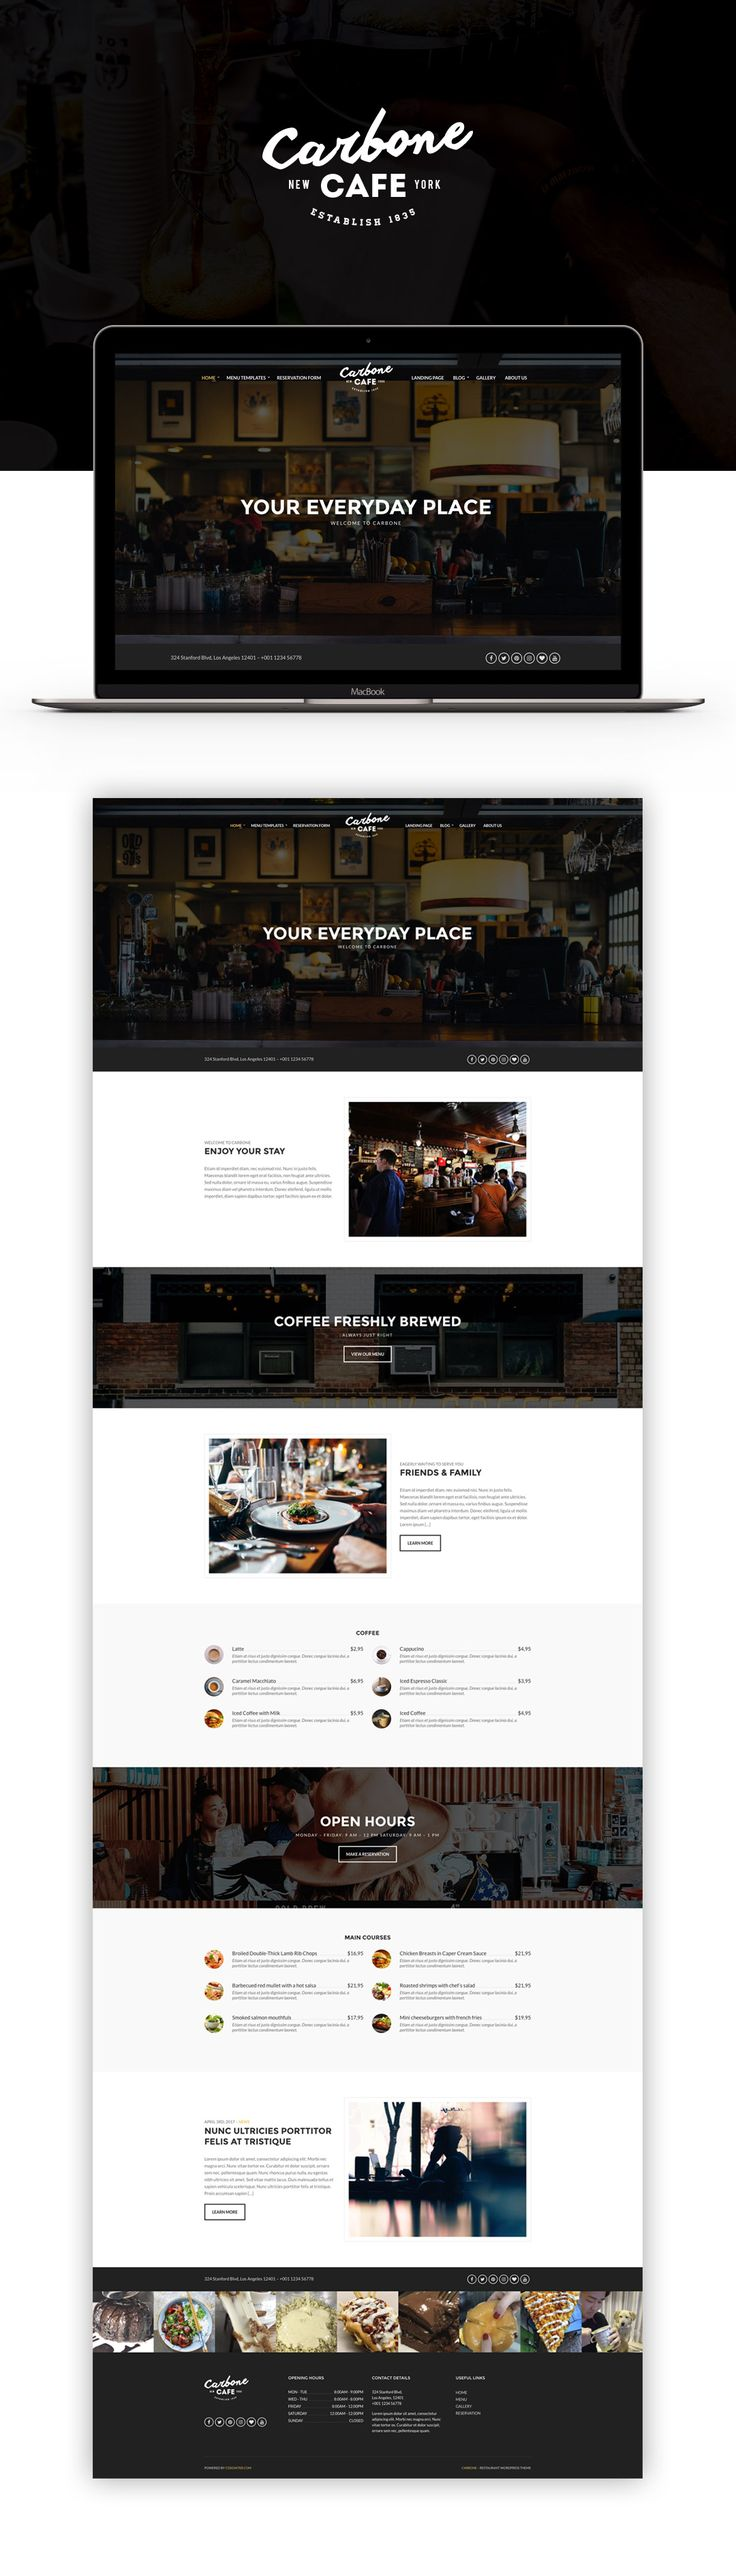 Looking for a flexible theme for your Cafe / Bar / Restaurant business? Look no further. Reflect your business's mission through an elegant and modern website built with Carbone.